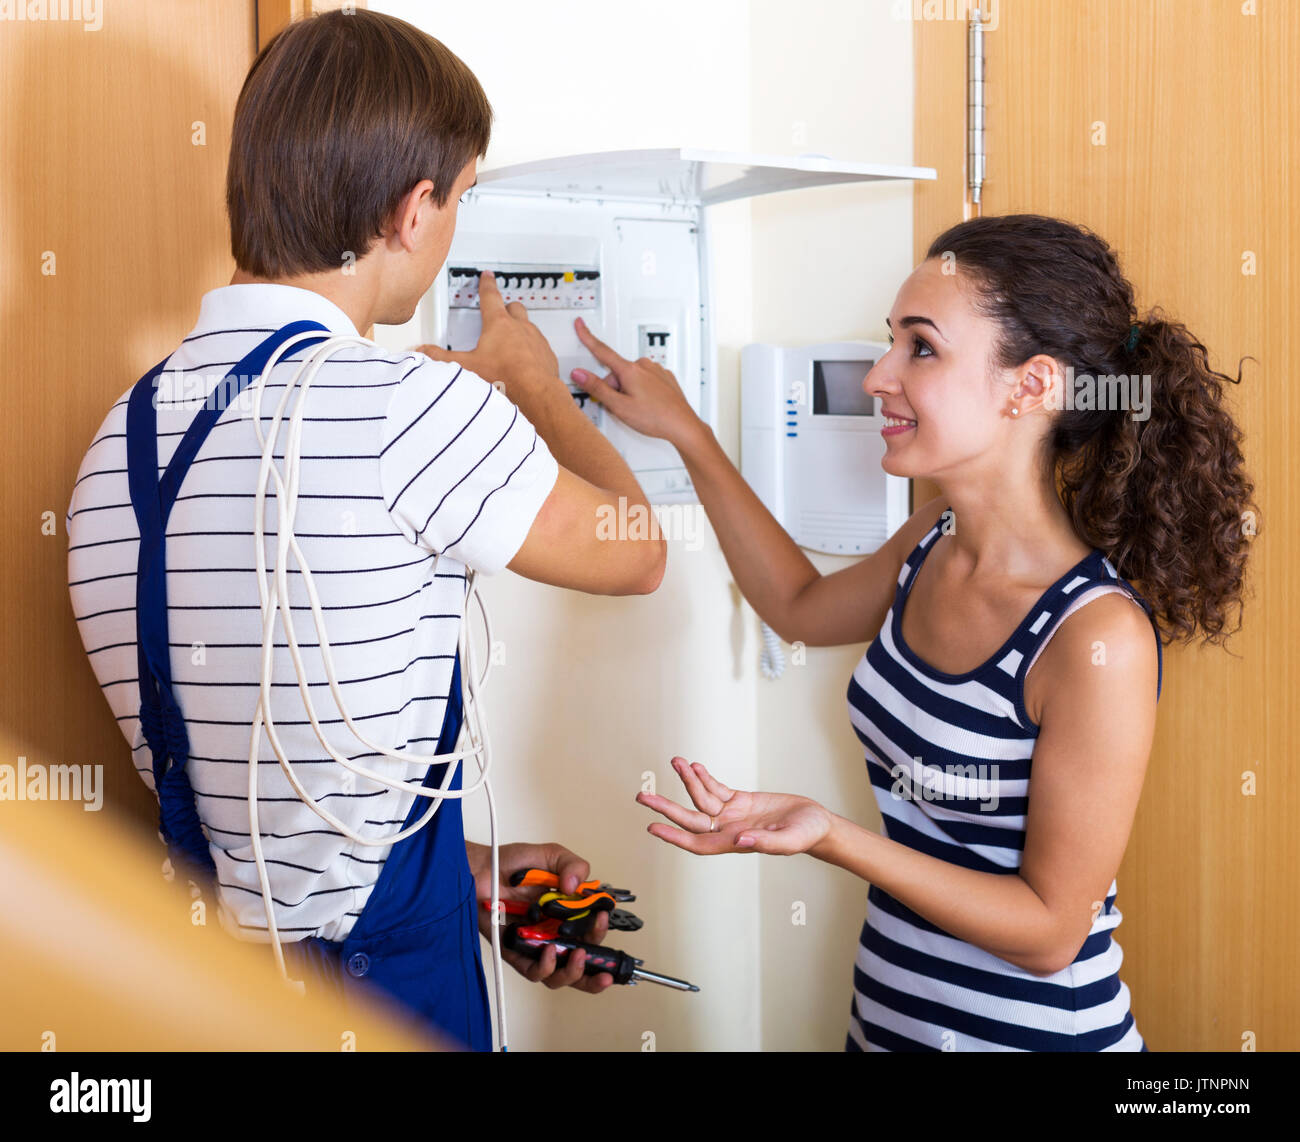 Smiling female client needs professional help of electrician at home ...